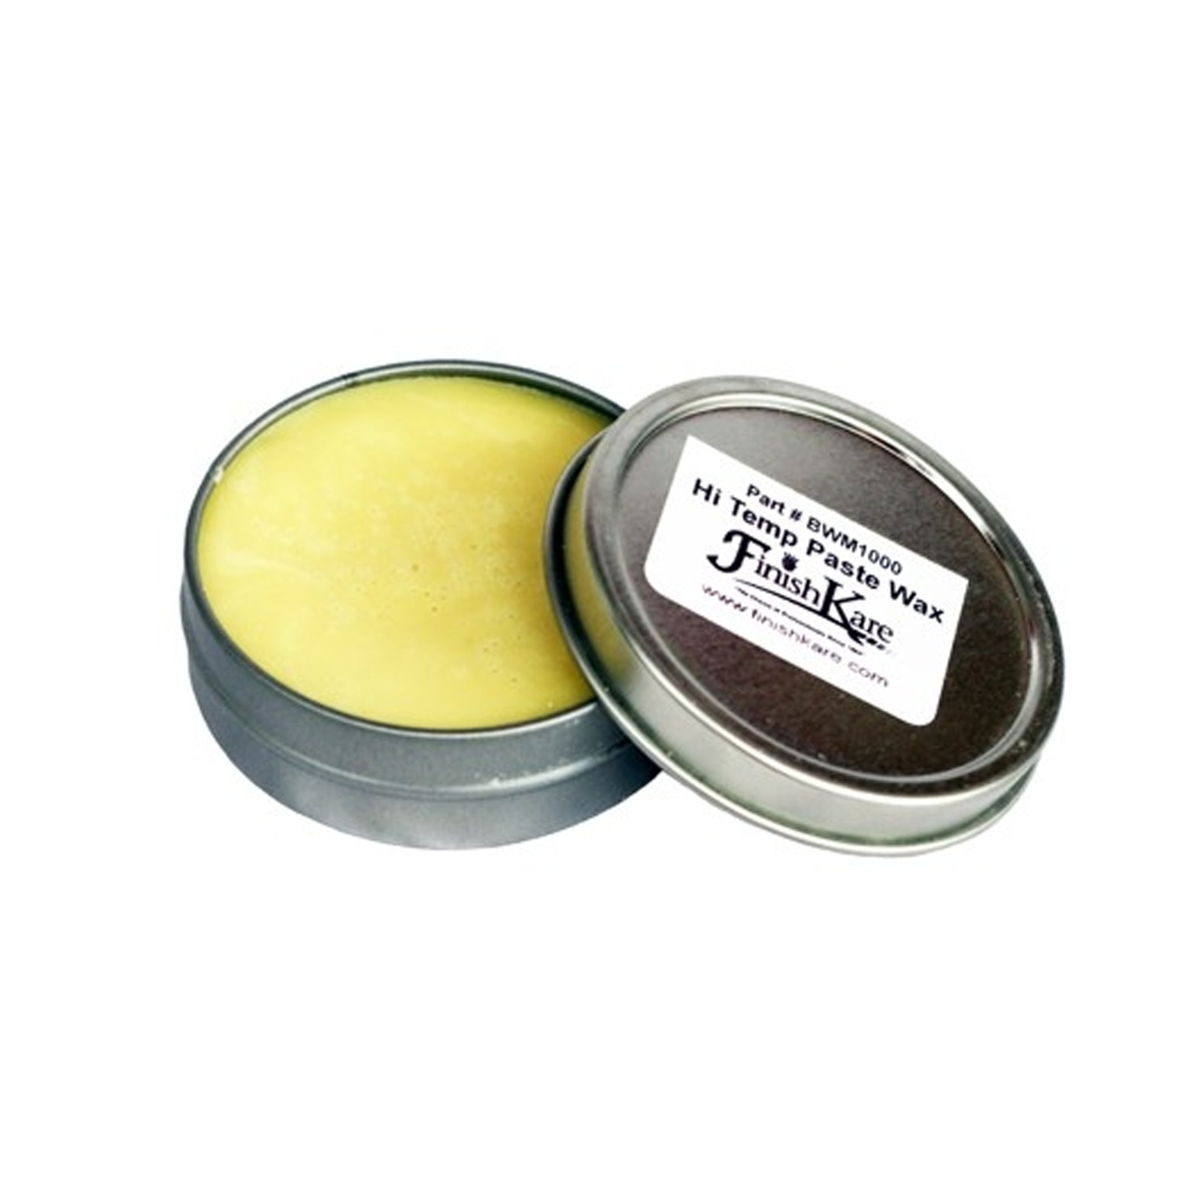 FINISH KARE Hi Temp Paste Wax 50g Twardy Wosk